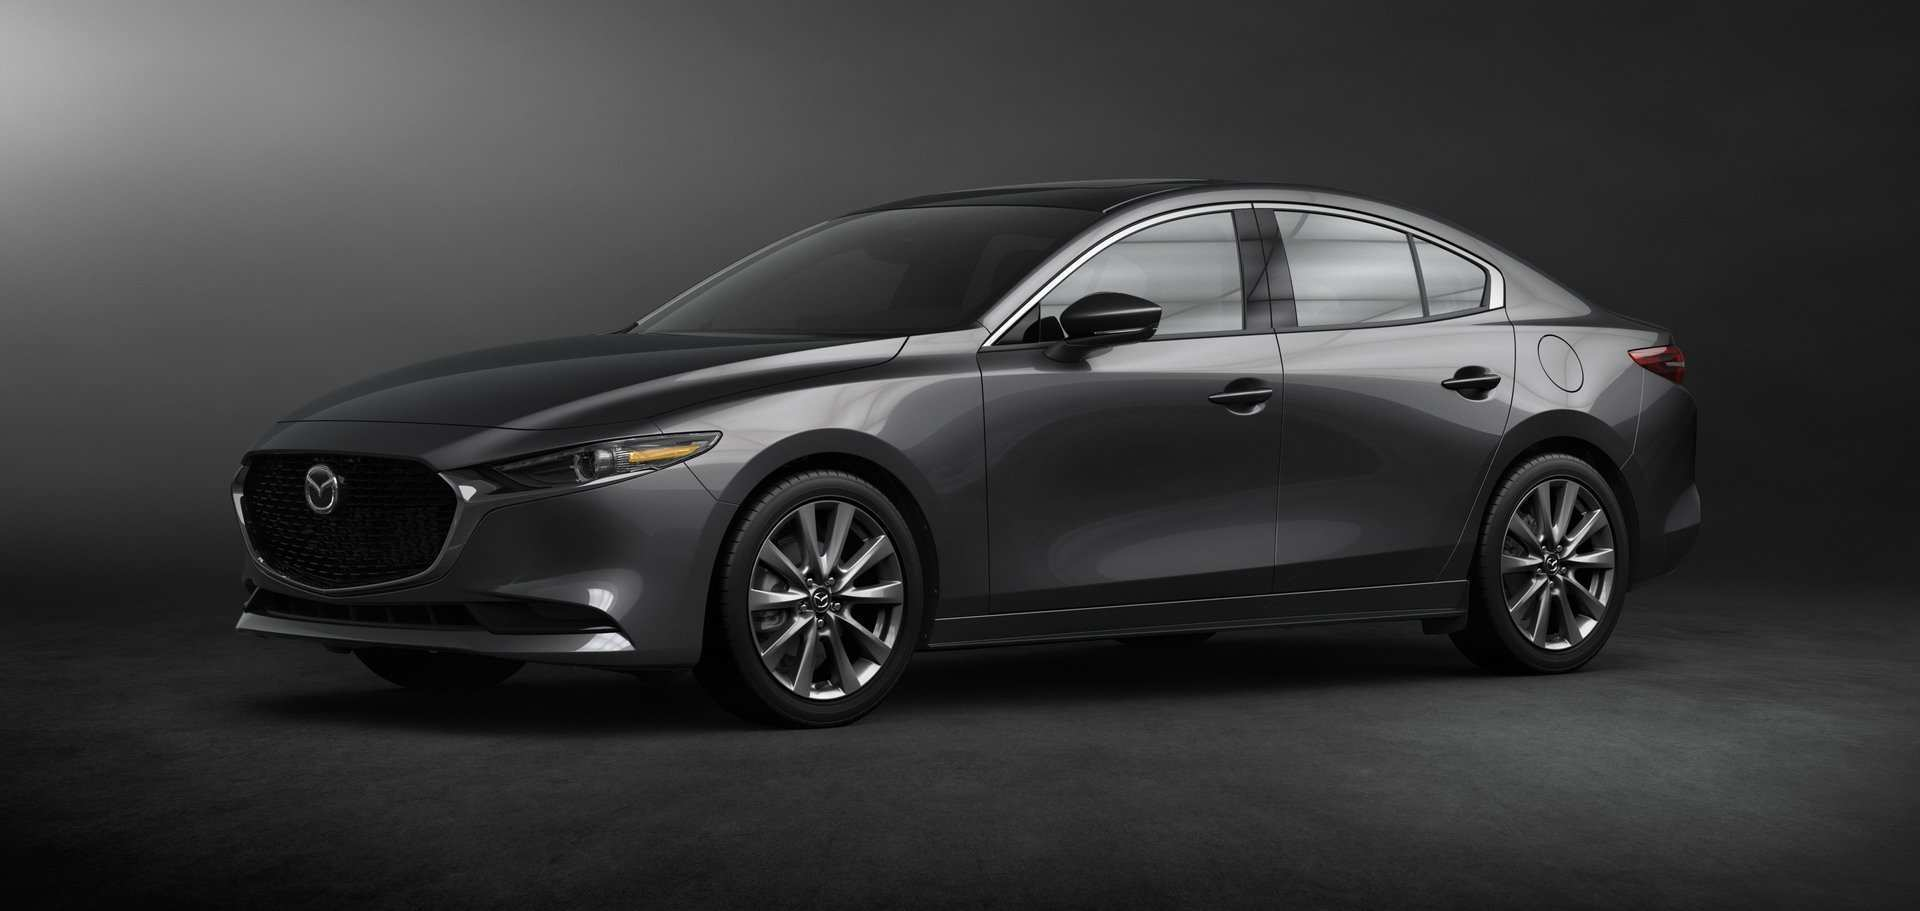 69 The Mazda 3 2020 Nueva Generacion Price And Review